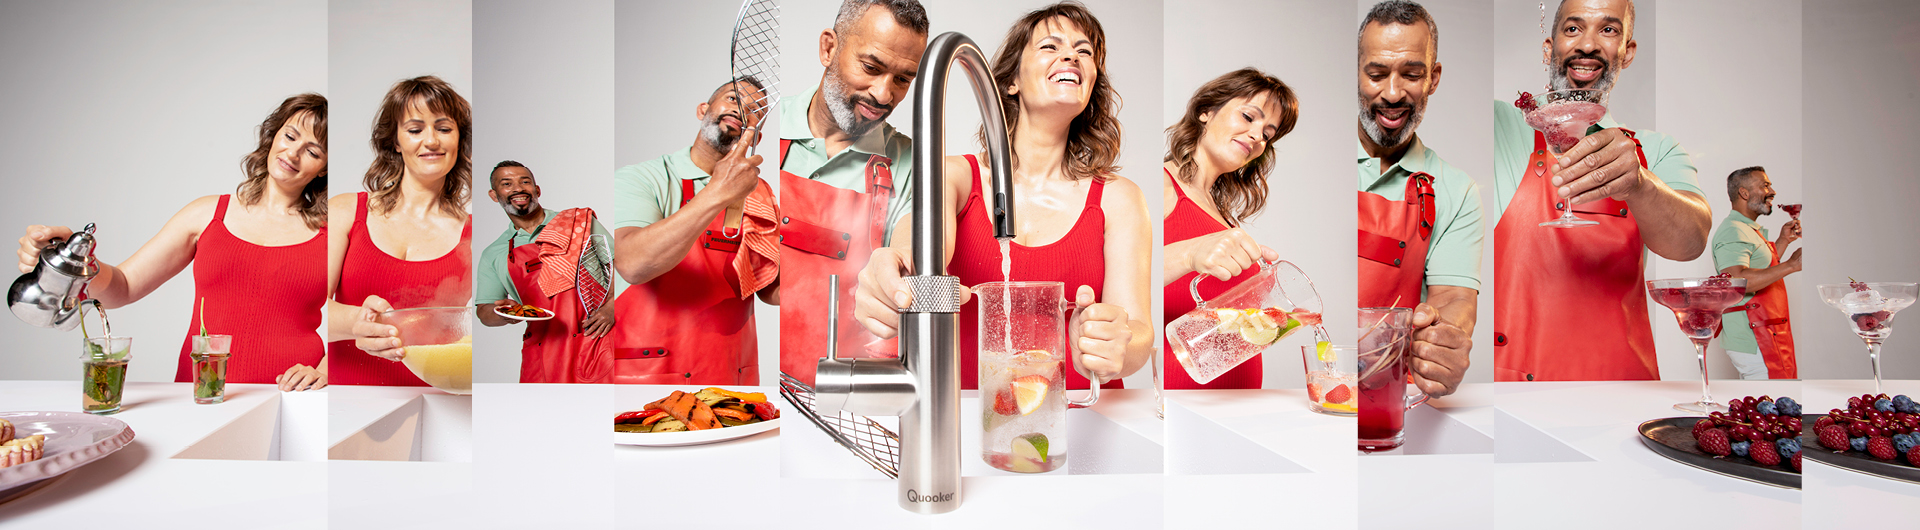 Quooker Boiling Tap Banner